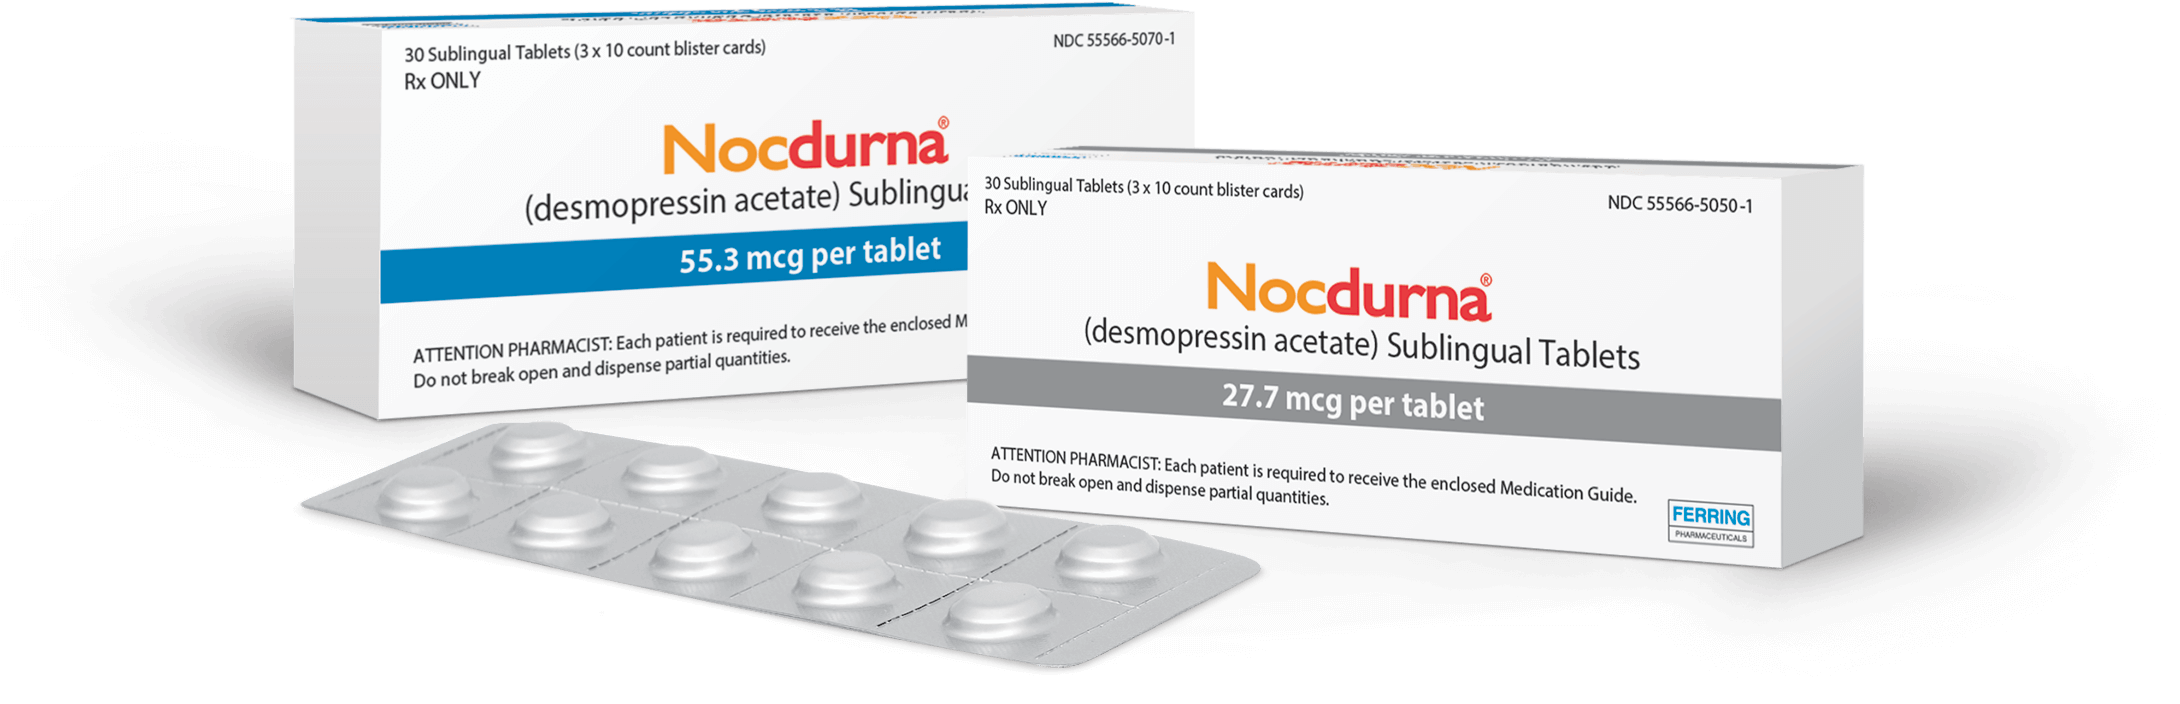 NOCDURNA (desmopressin acetate) sublingual tablets for nocturnal polyuria